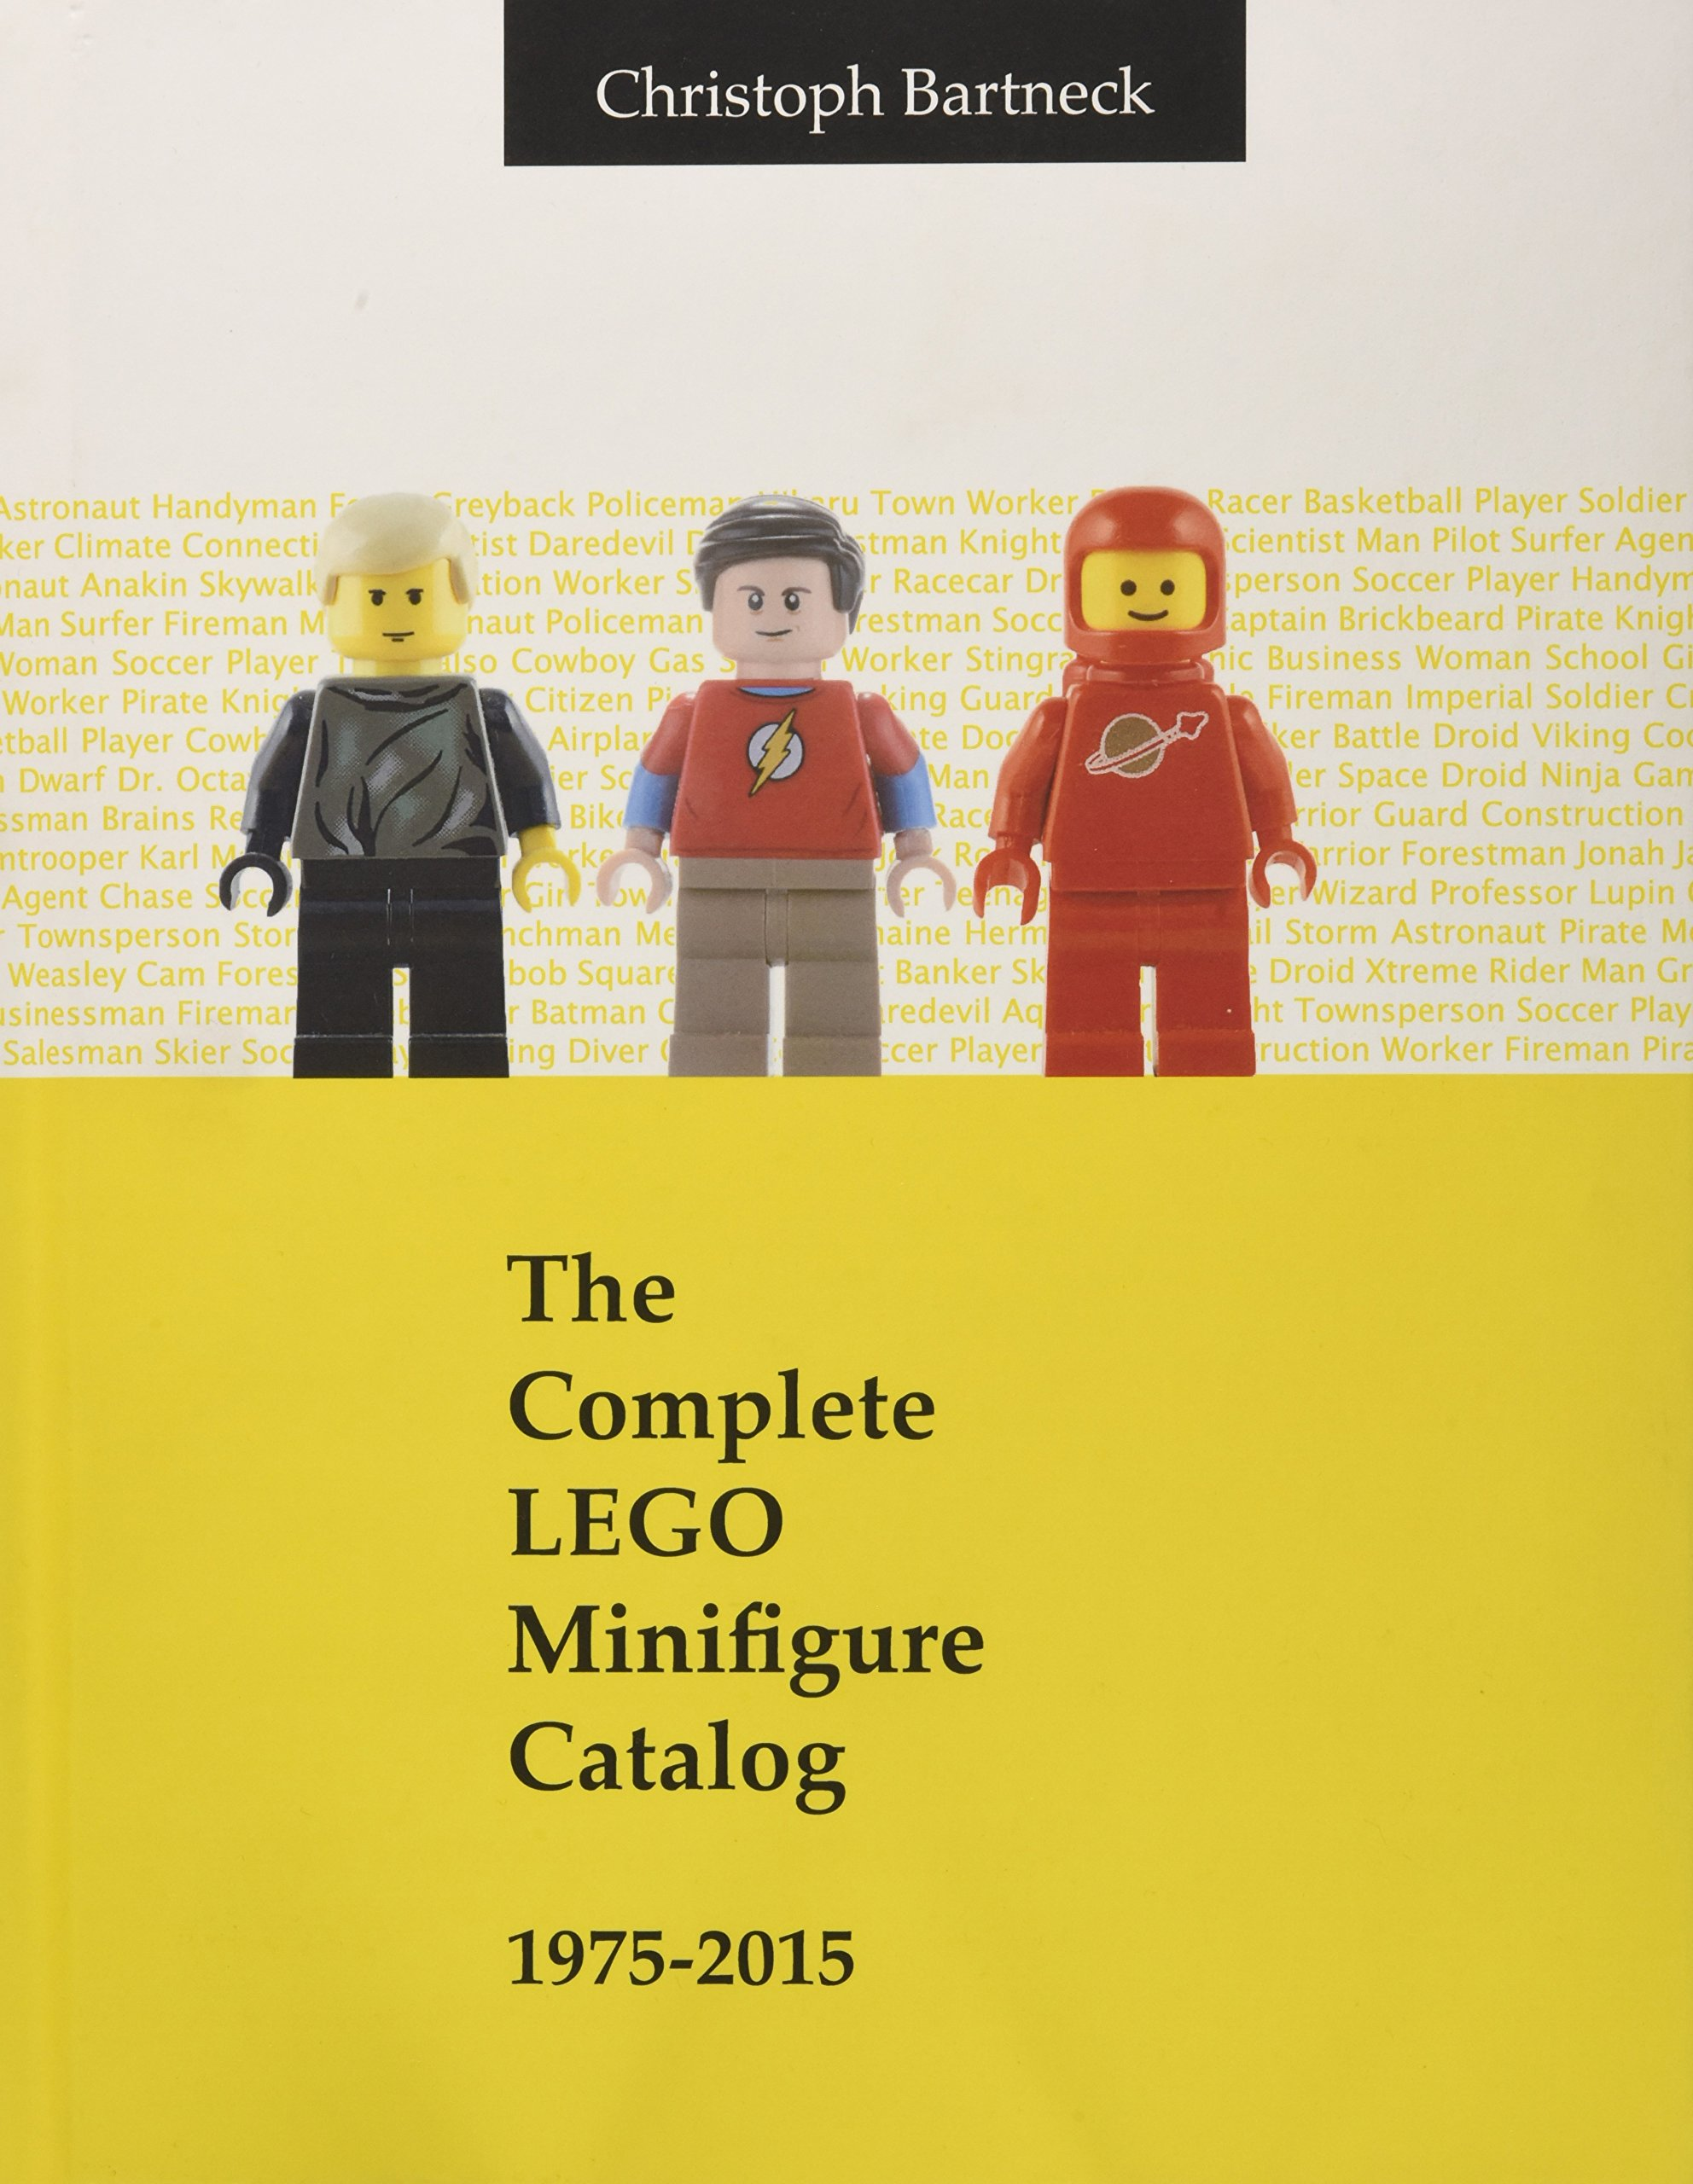 The Complete Lego Minifigure Catalog 1975-2015 by Bartneck Christoph (Image #1)